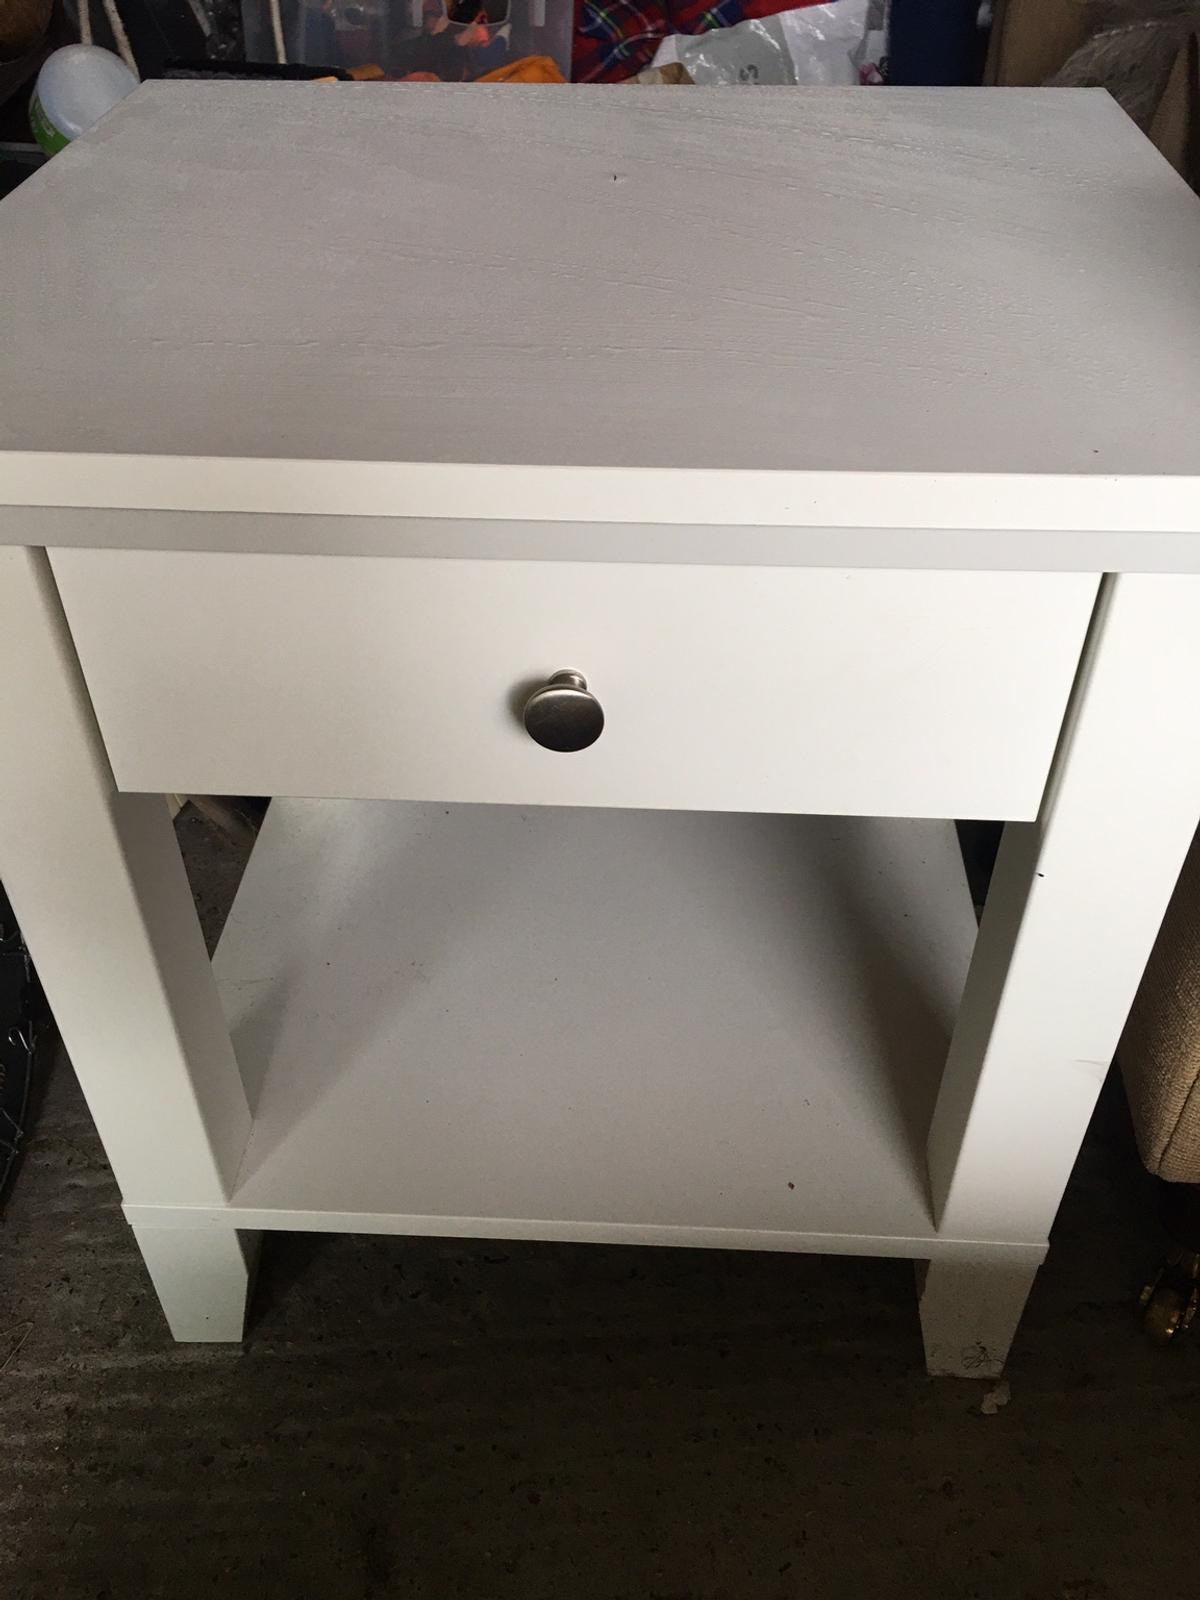 Picture of: White Solid Wood Bedside Table With Drawer In Ss14 Basildon For 5 00 For Sale Shpock